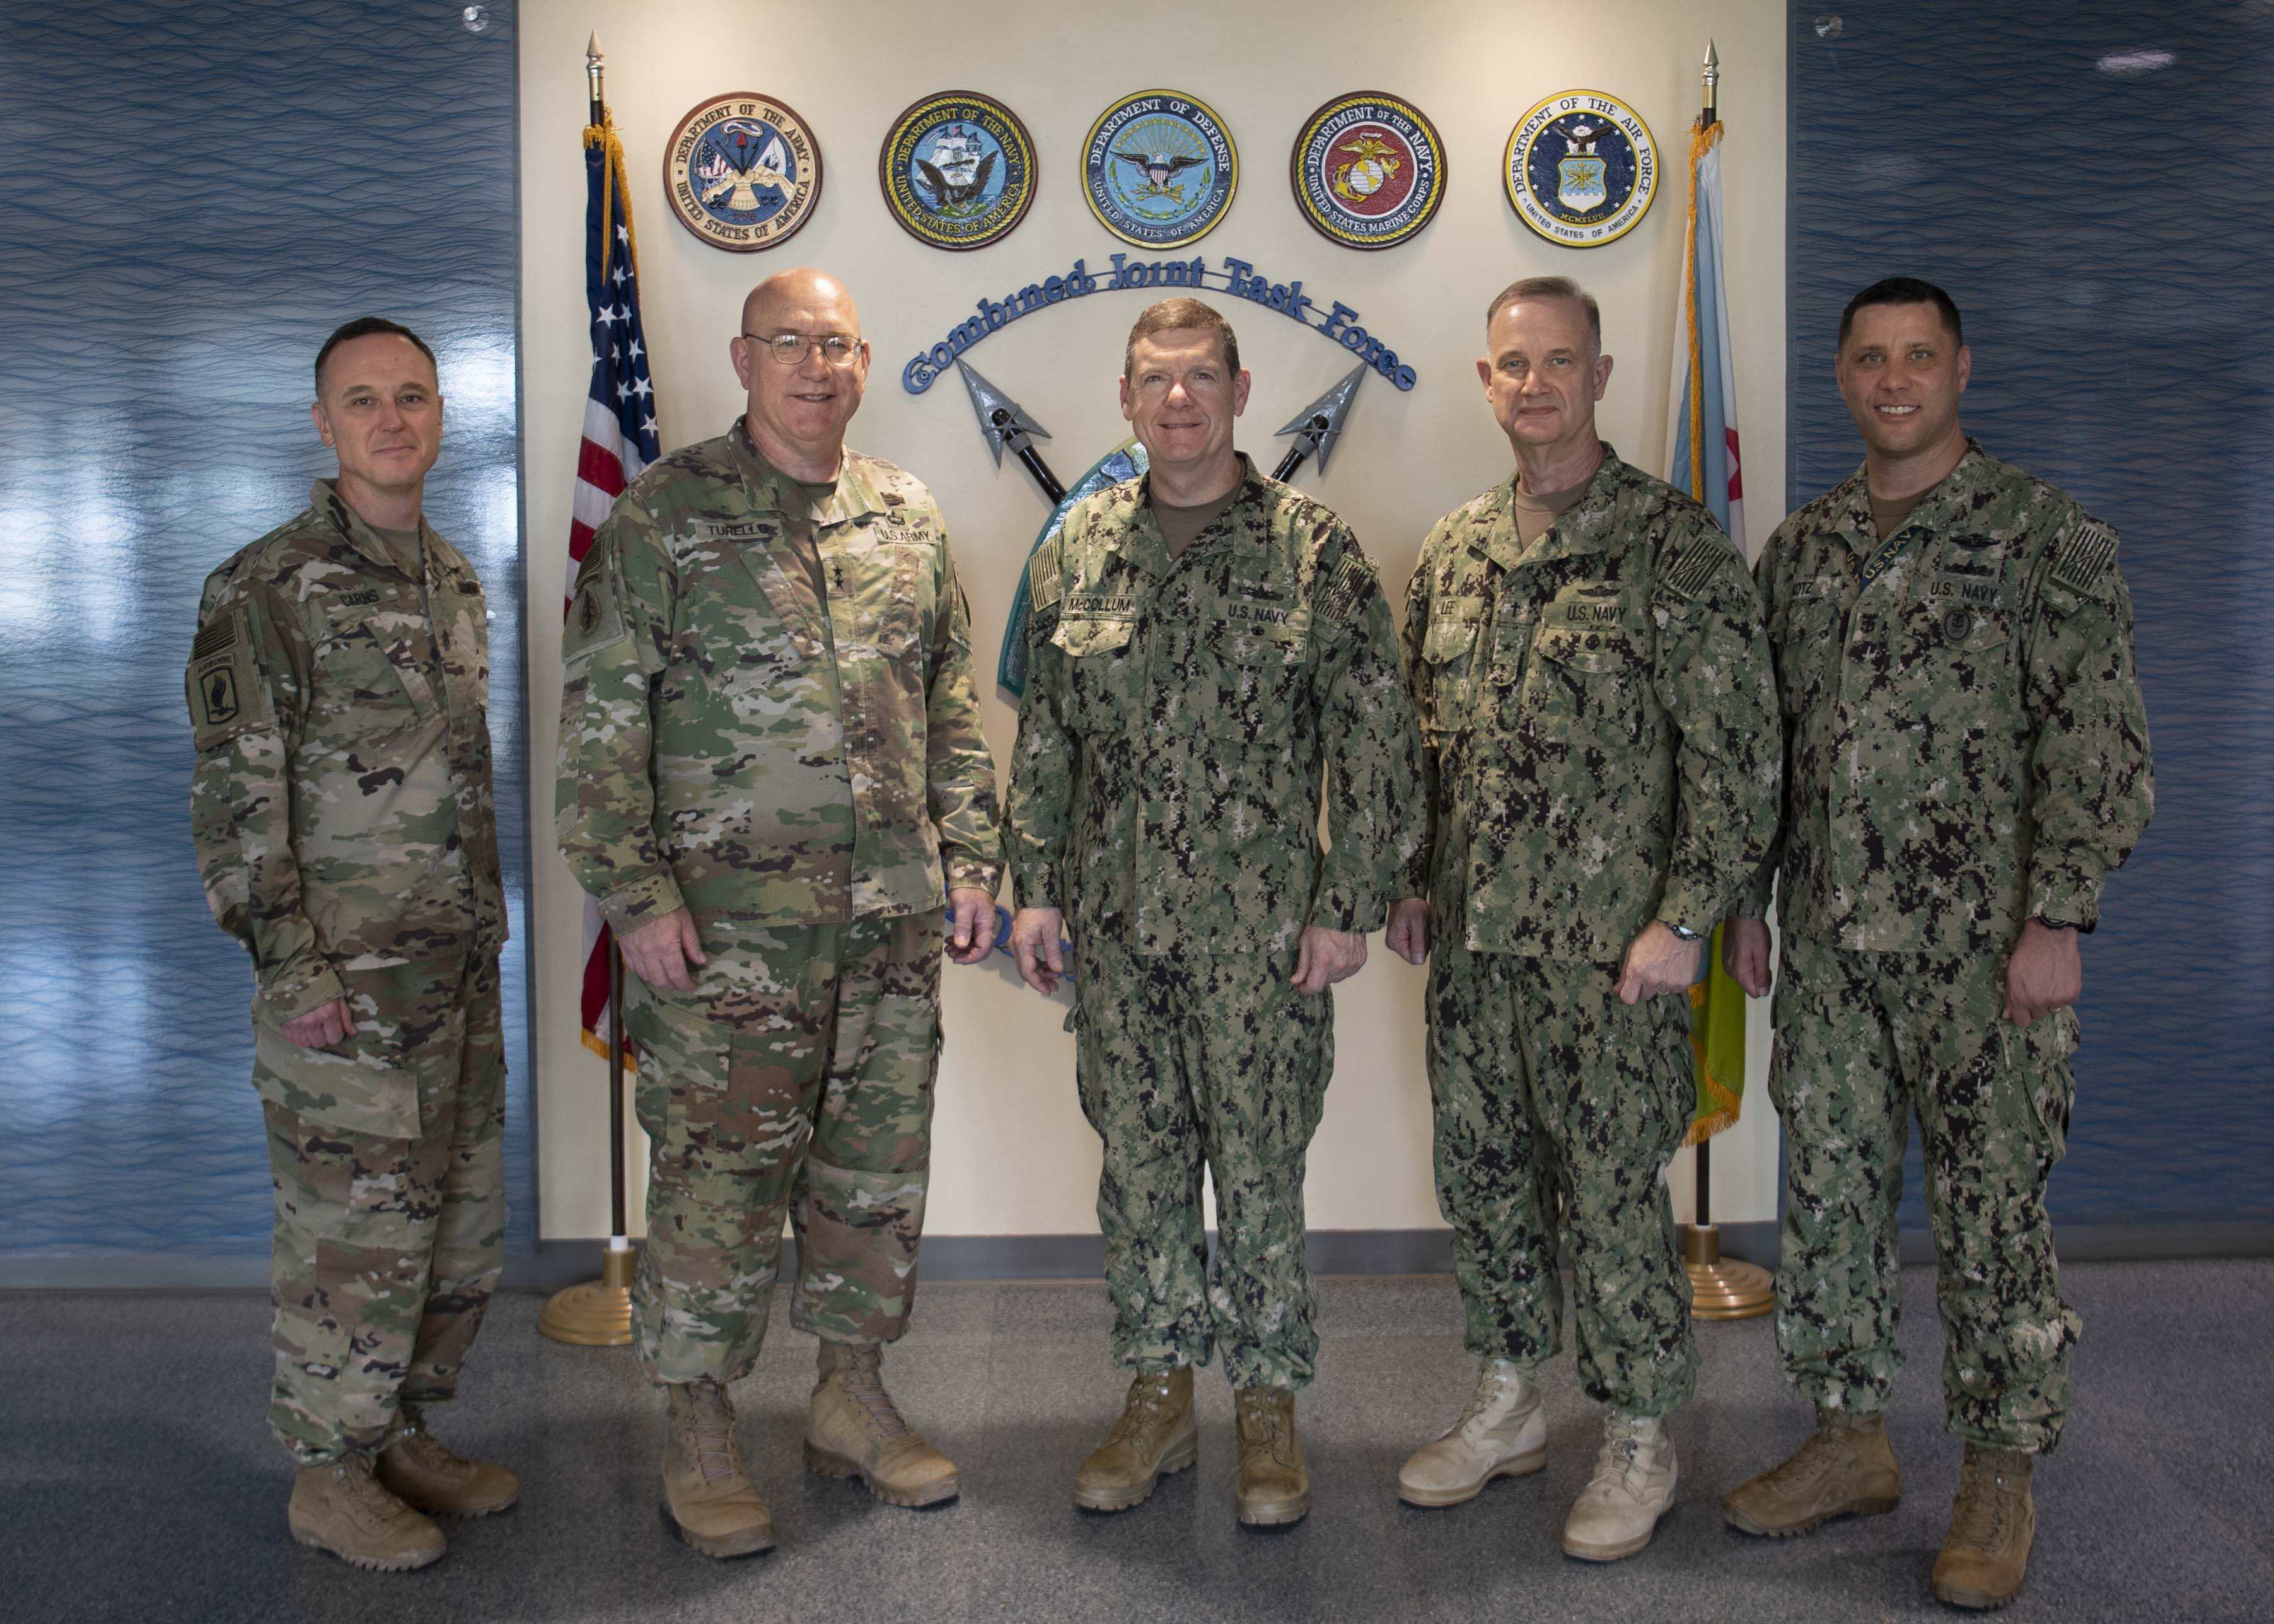 From left, U.S. Army Command Sgt. Maj. Shawn Carns, command senior enlisted leader (CSEL), Combined Joint Task Force-Horn of Africa (CJTF-HOA), U.S. Army Maj. Gen. Michael Turello, commanding general, CJTF-HOA, U.S. Navy Vice Adm. Luke McCollum, commander, Navy Reserve Force, chief, Navy Reserve, U.S. Navy Rear Adm. Endel Lee, deputy chief of chaplains, Reserve Matters, and U.S. Navy Master Chief Christopher Kotz, force master chief, Navy Reserve, pose for a group photo at Camp Lemonnier, Djibouti, Nov. 29, 2019. McCollum visited Camp Lemonnier to meet with deployed Navy Reserve sailors and other service members. (U.S. Air Force photo by Staff Sgt. J.D. Strong II)